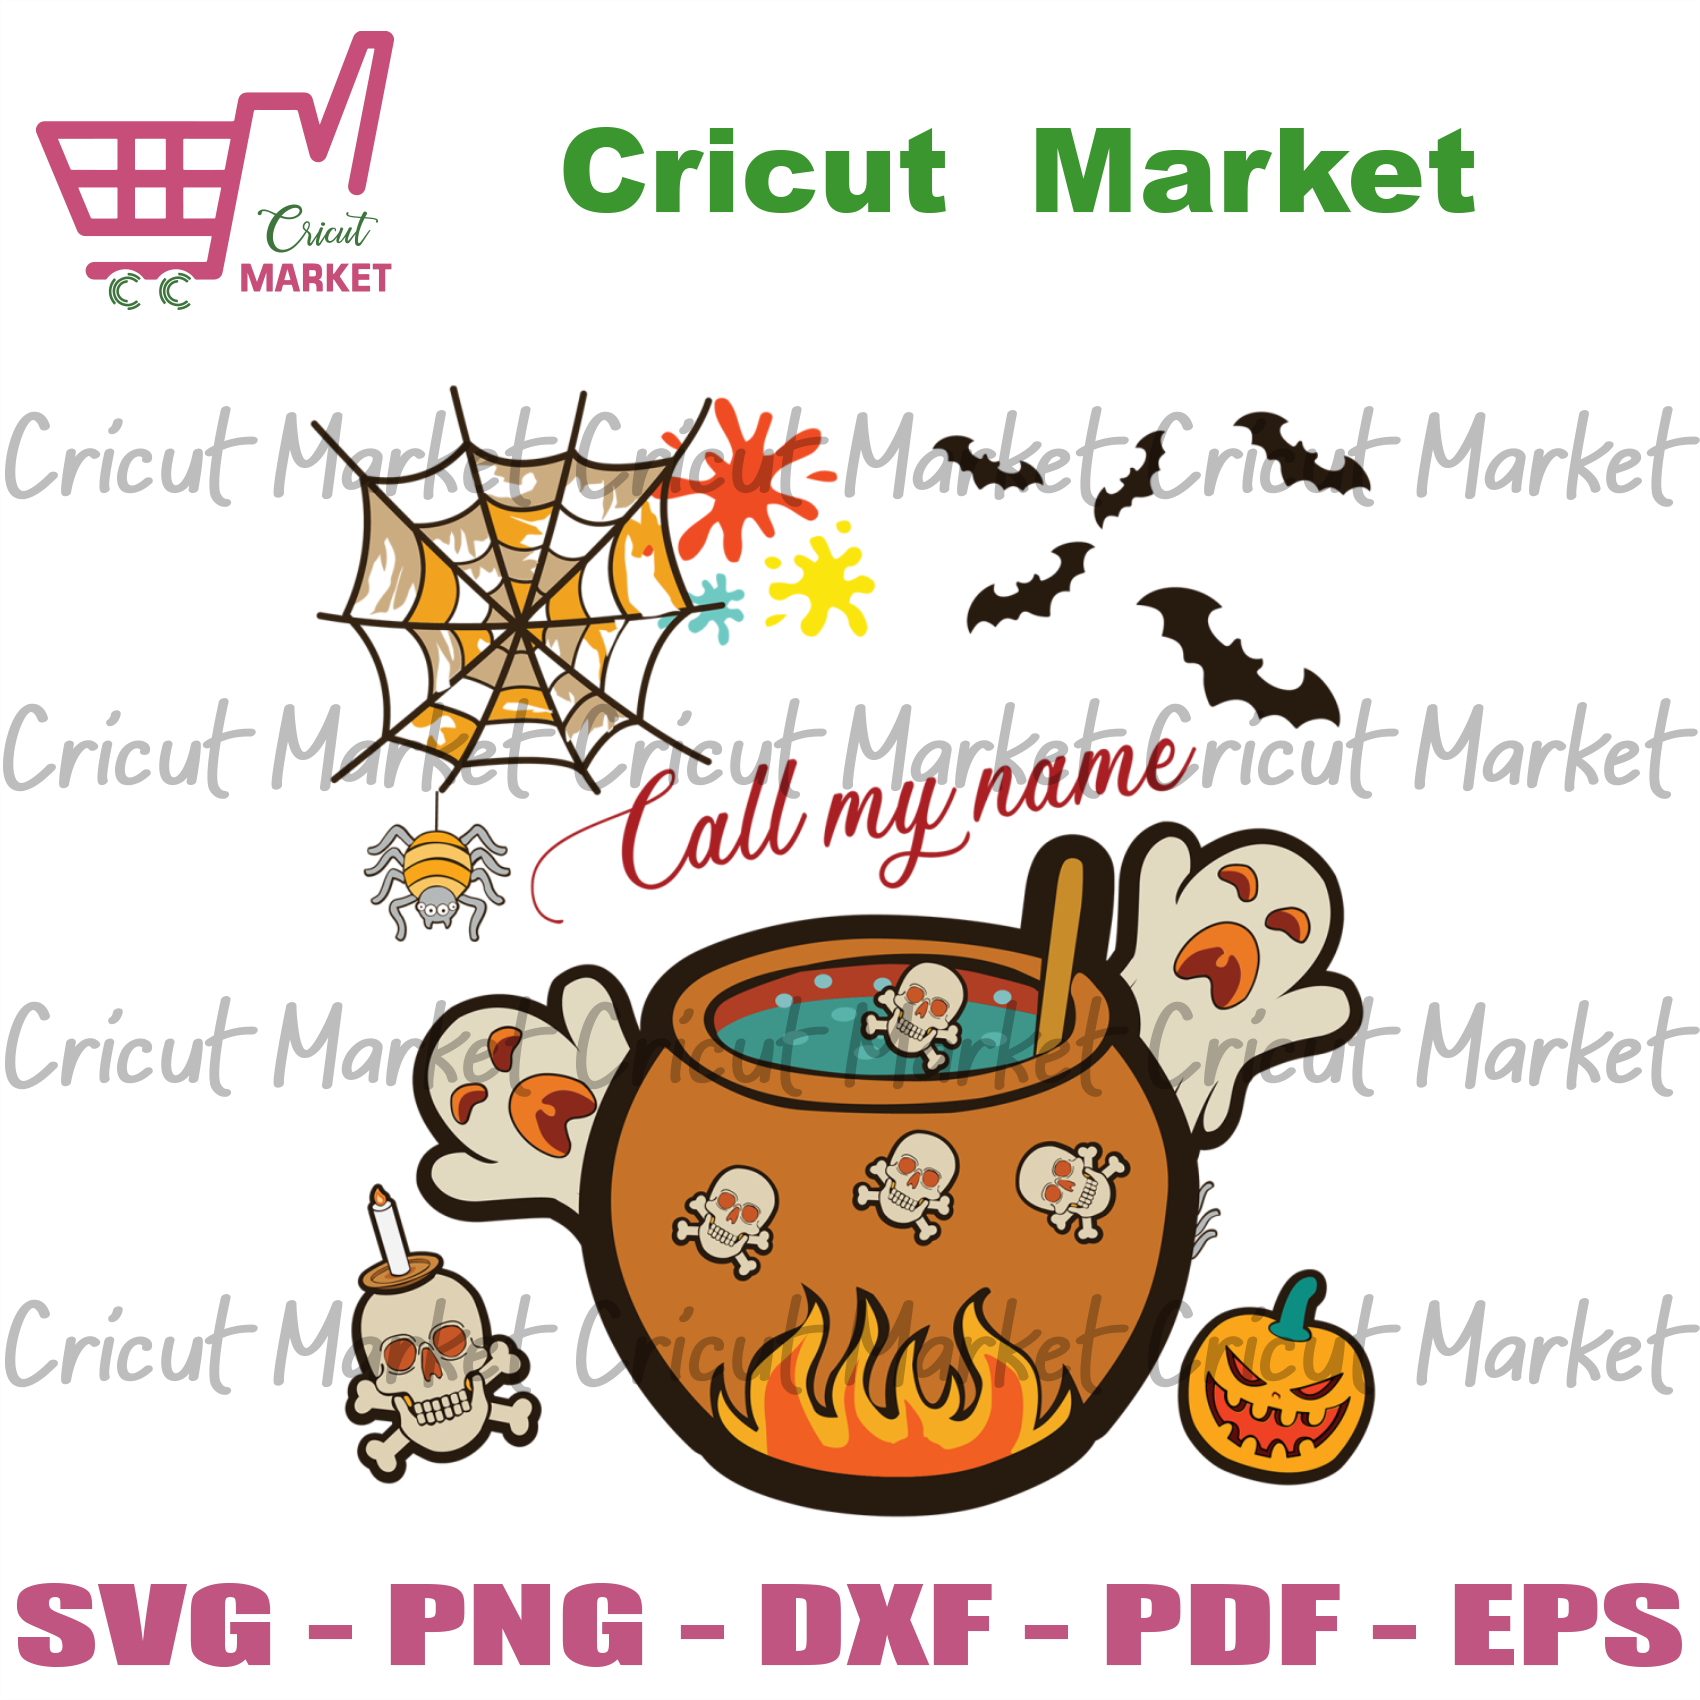 Call My Name Svg, Halloween Svg, Boo Svg, Wine Svg, Wine Lovers, Bat Svg, Halloween Gift, Halloween Shirt, Scary Halloween, Halloween Party, Funny Halloween, Halloweentown, Halloween Vector,